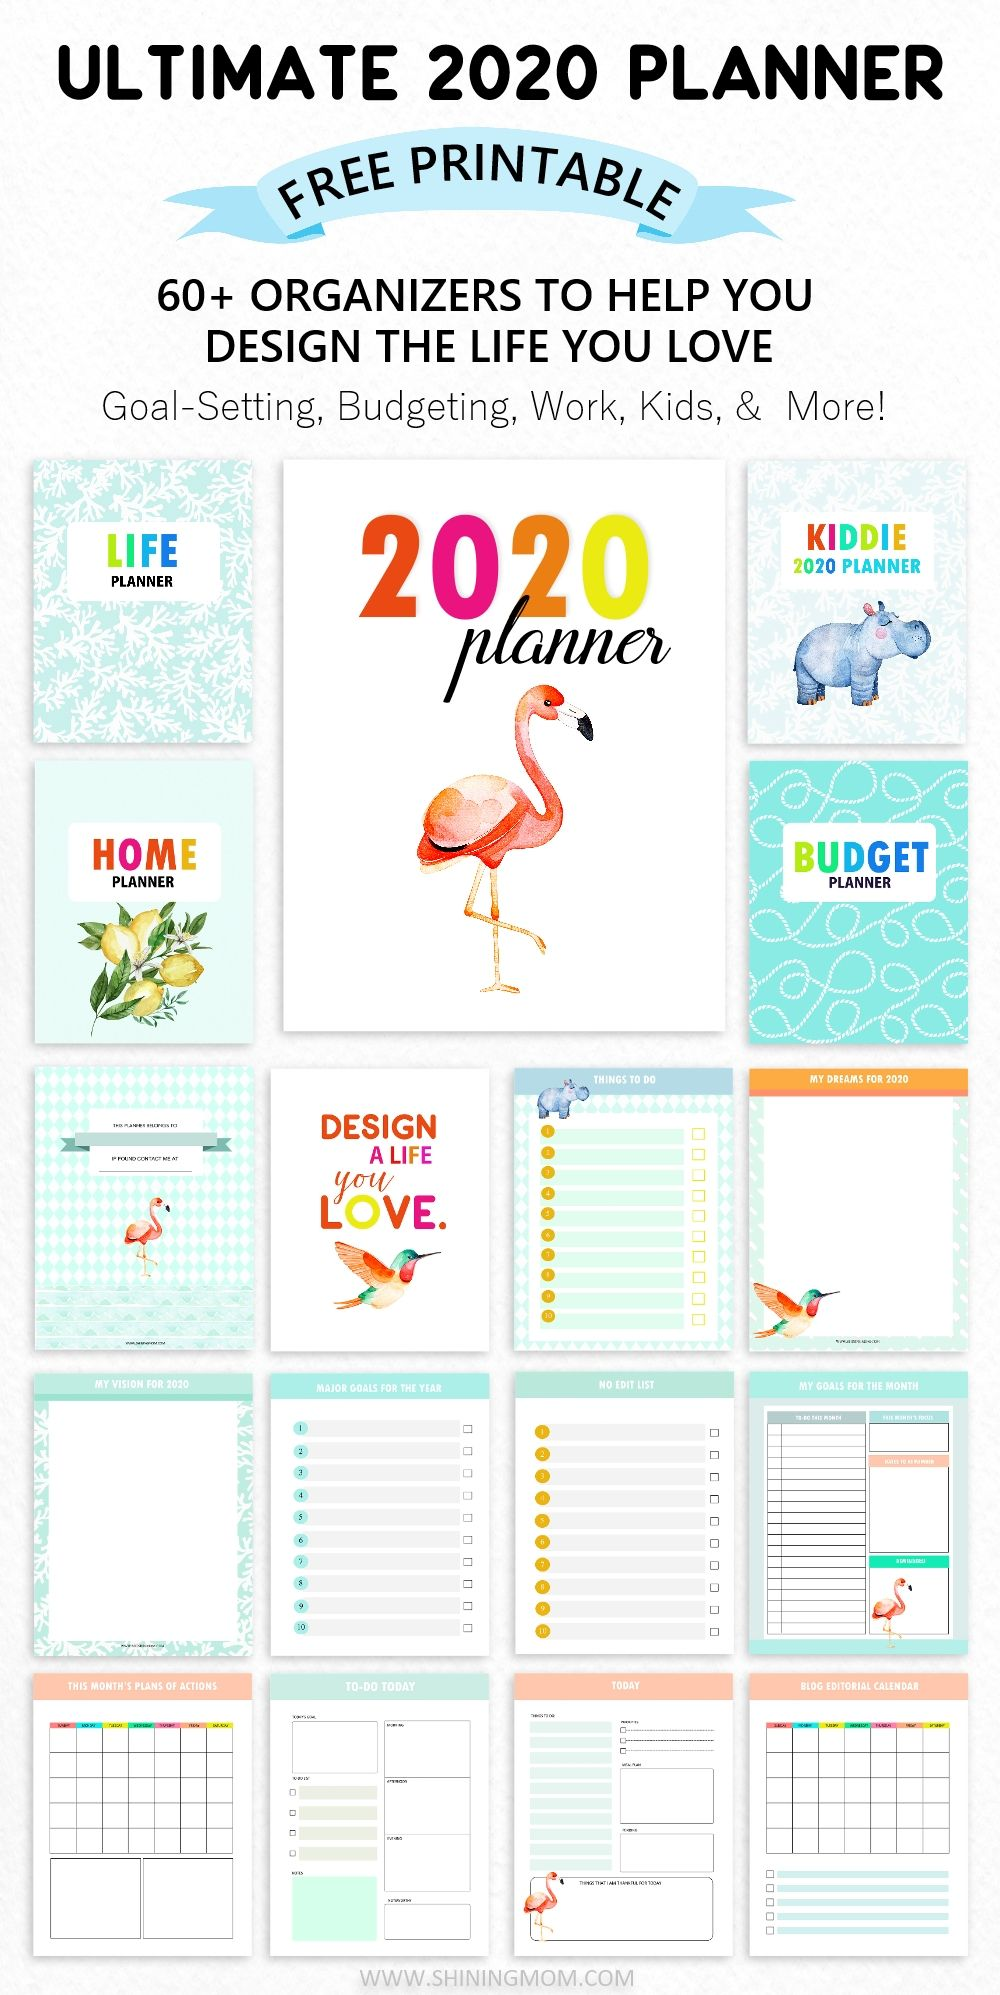 Free Printable Coupons 2020.The Ultimate Free Planner 2020 Design A Life You Love